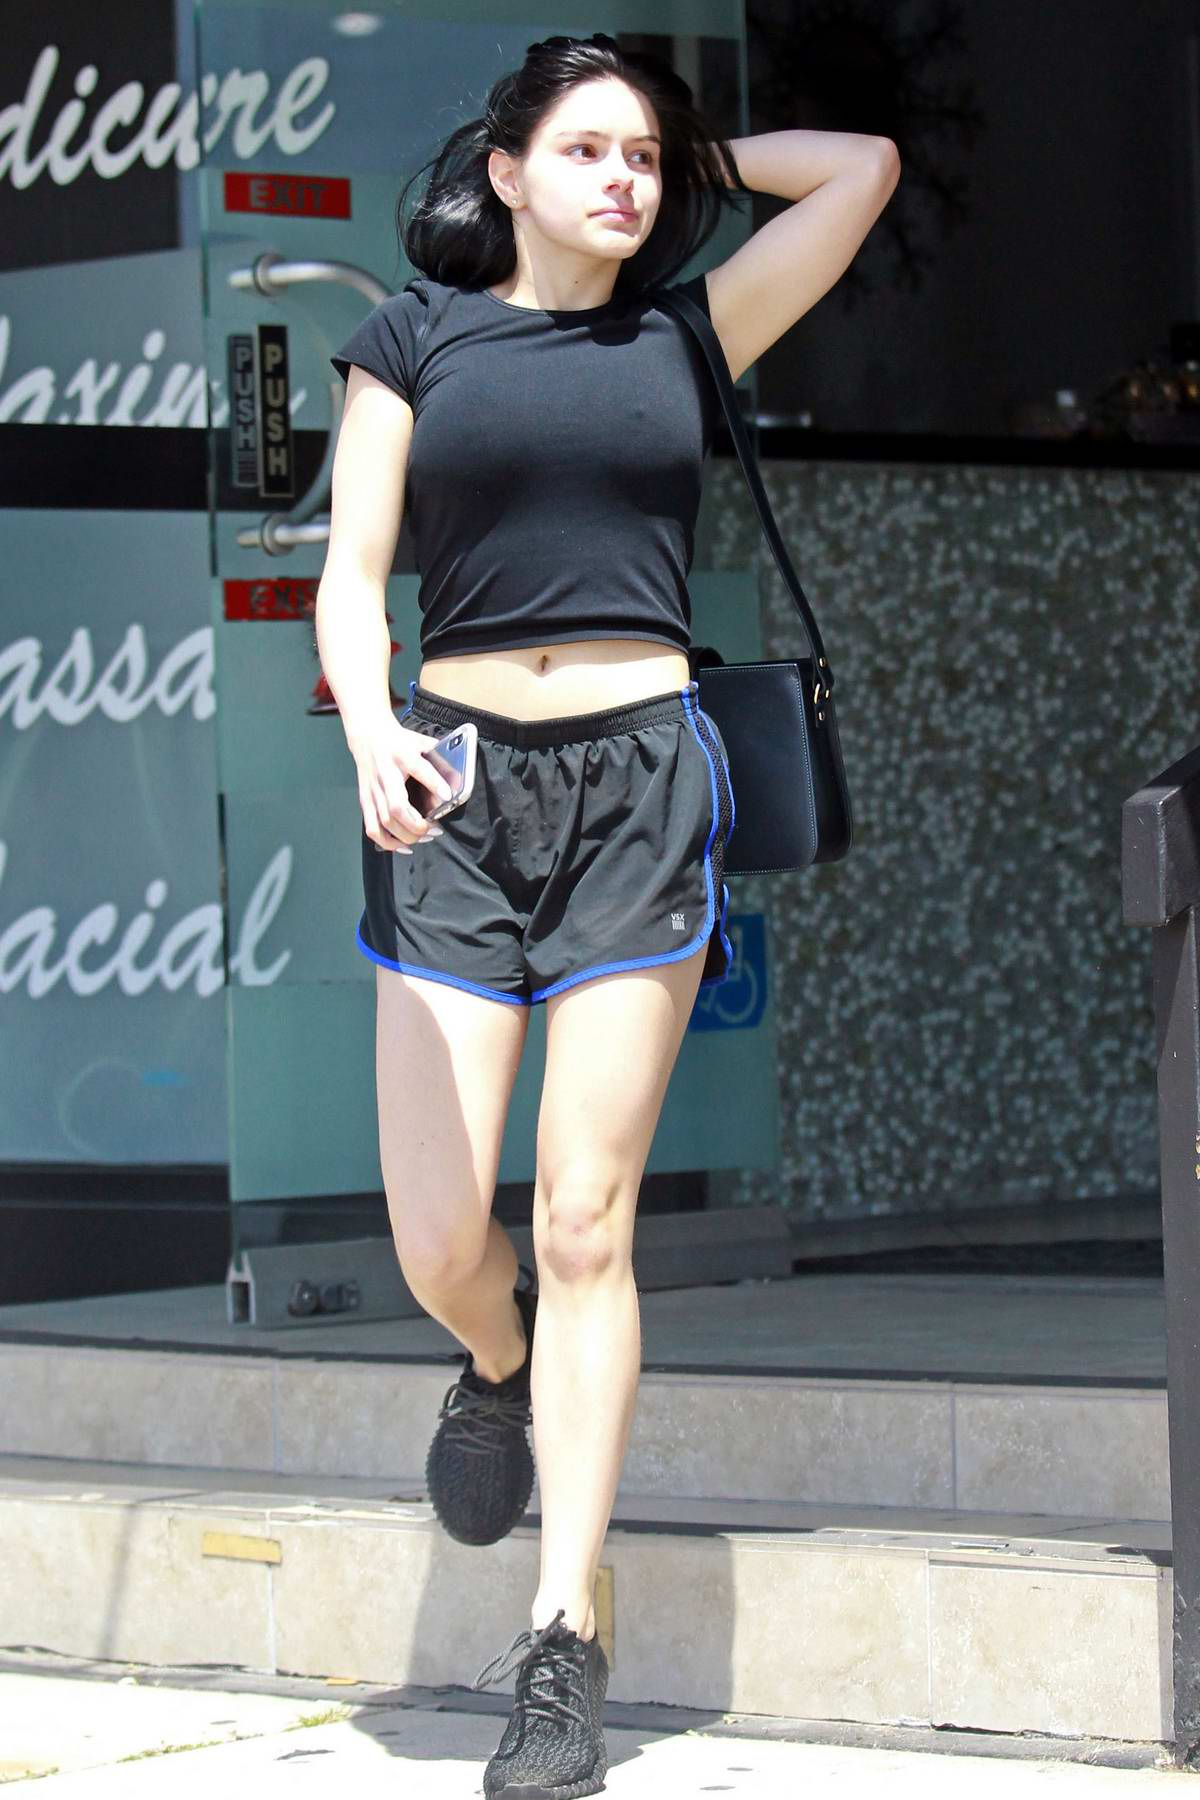 Ariel Winter flaunts her legs in black shorts while out shopping and visiting a nail salon in Los Angeles